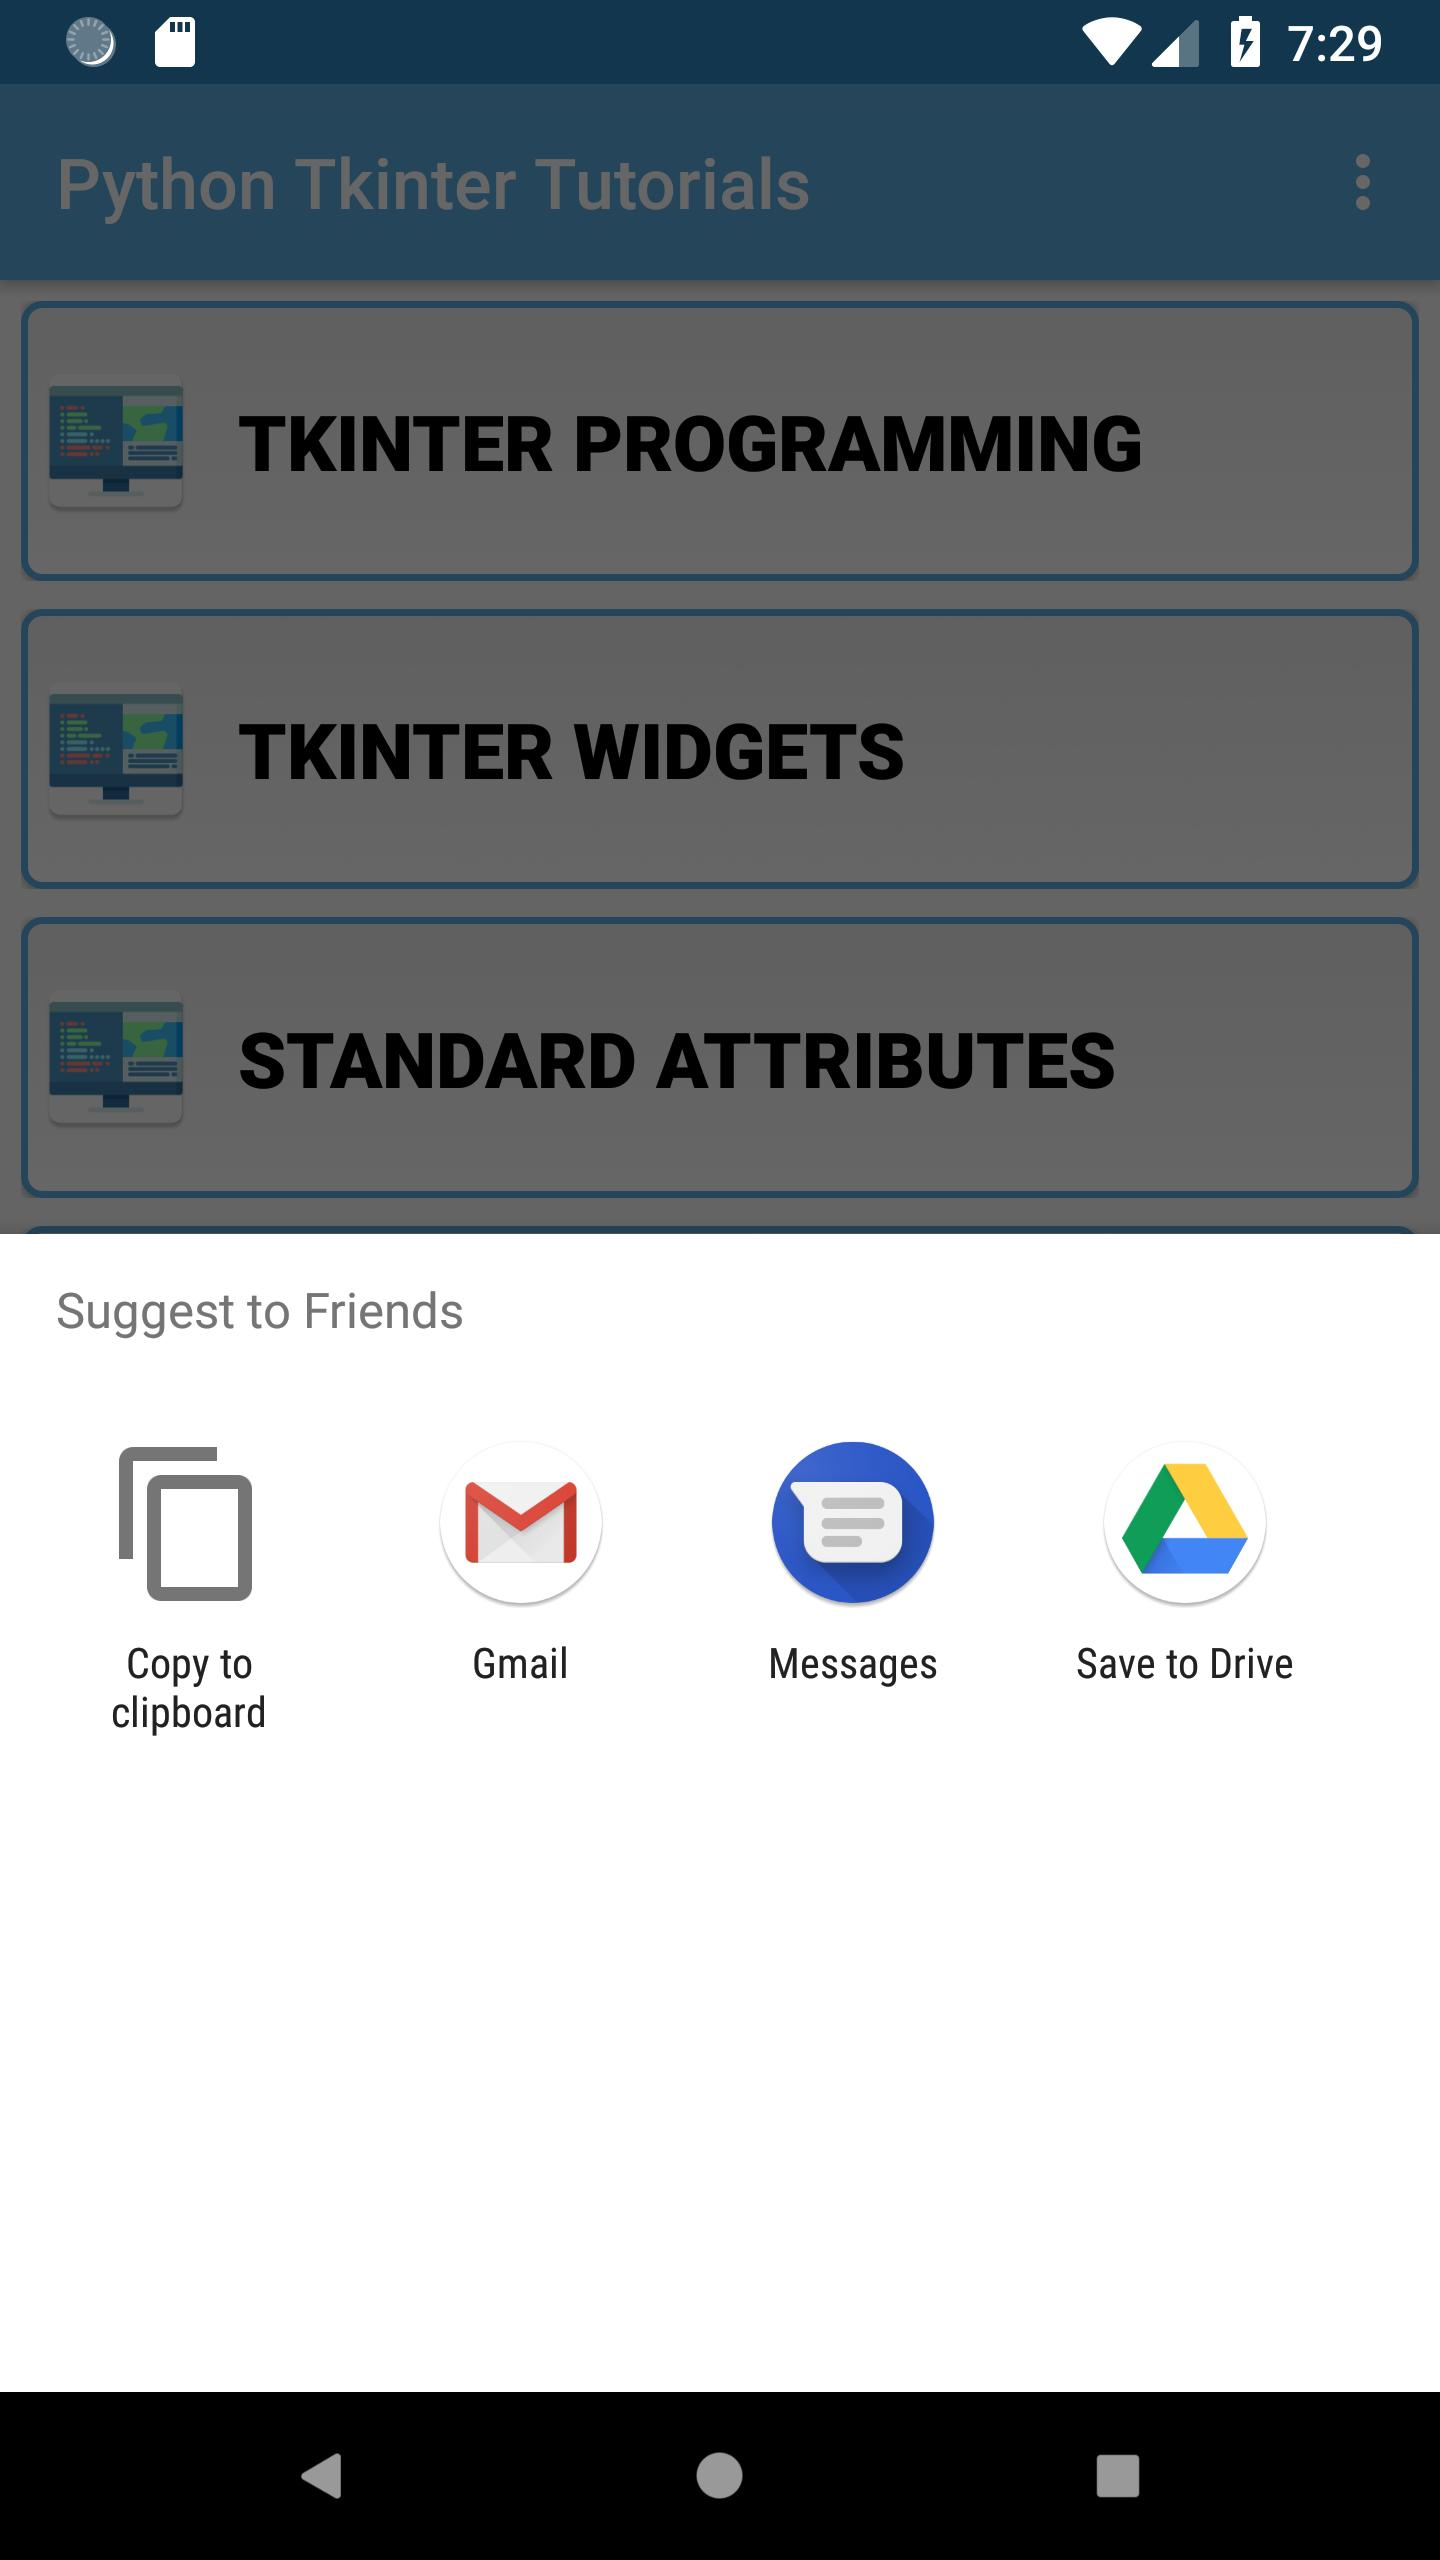 Python Tkinter Tutorials for Android - APK Download